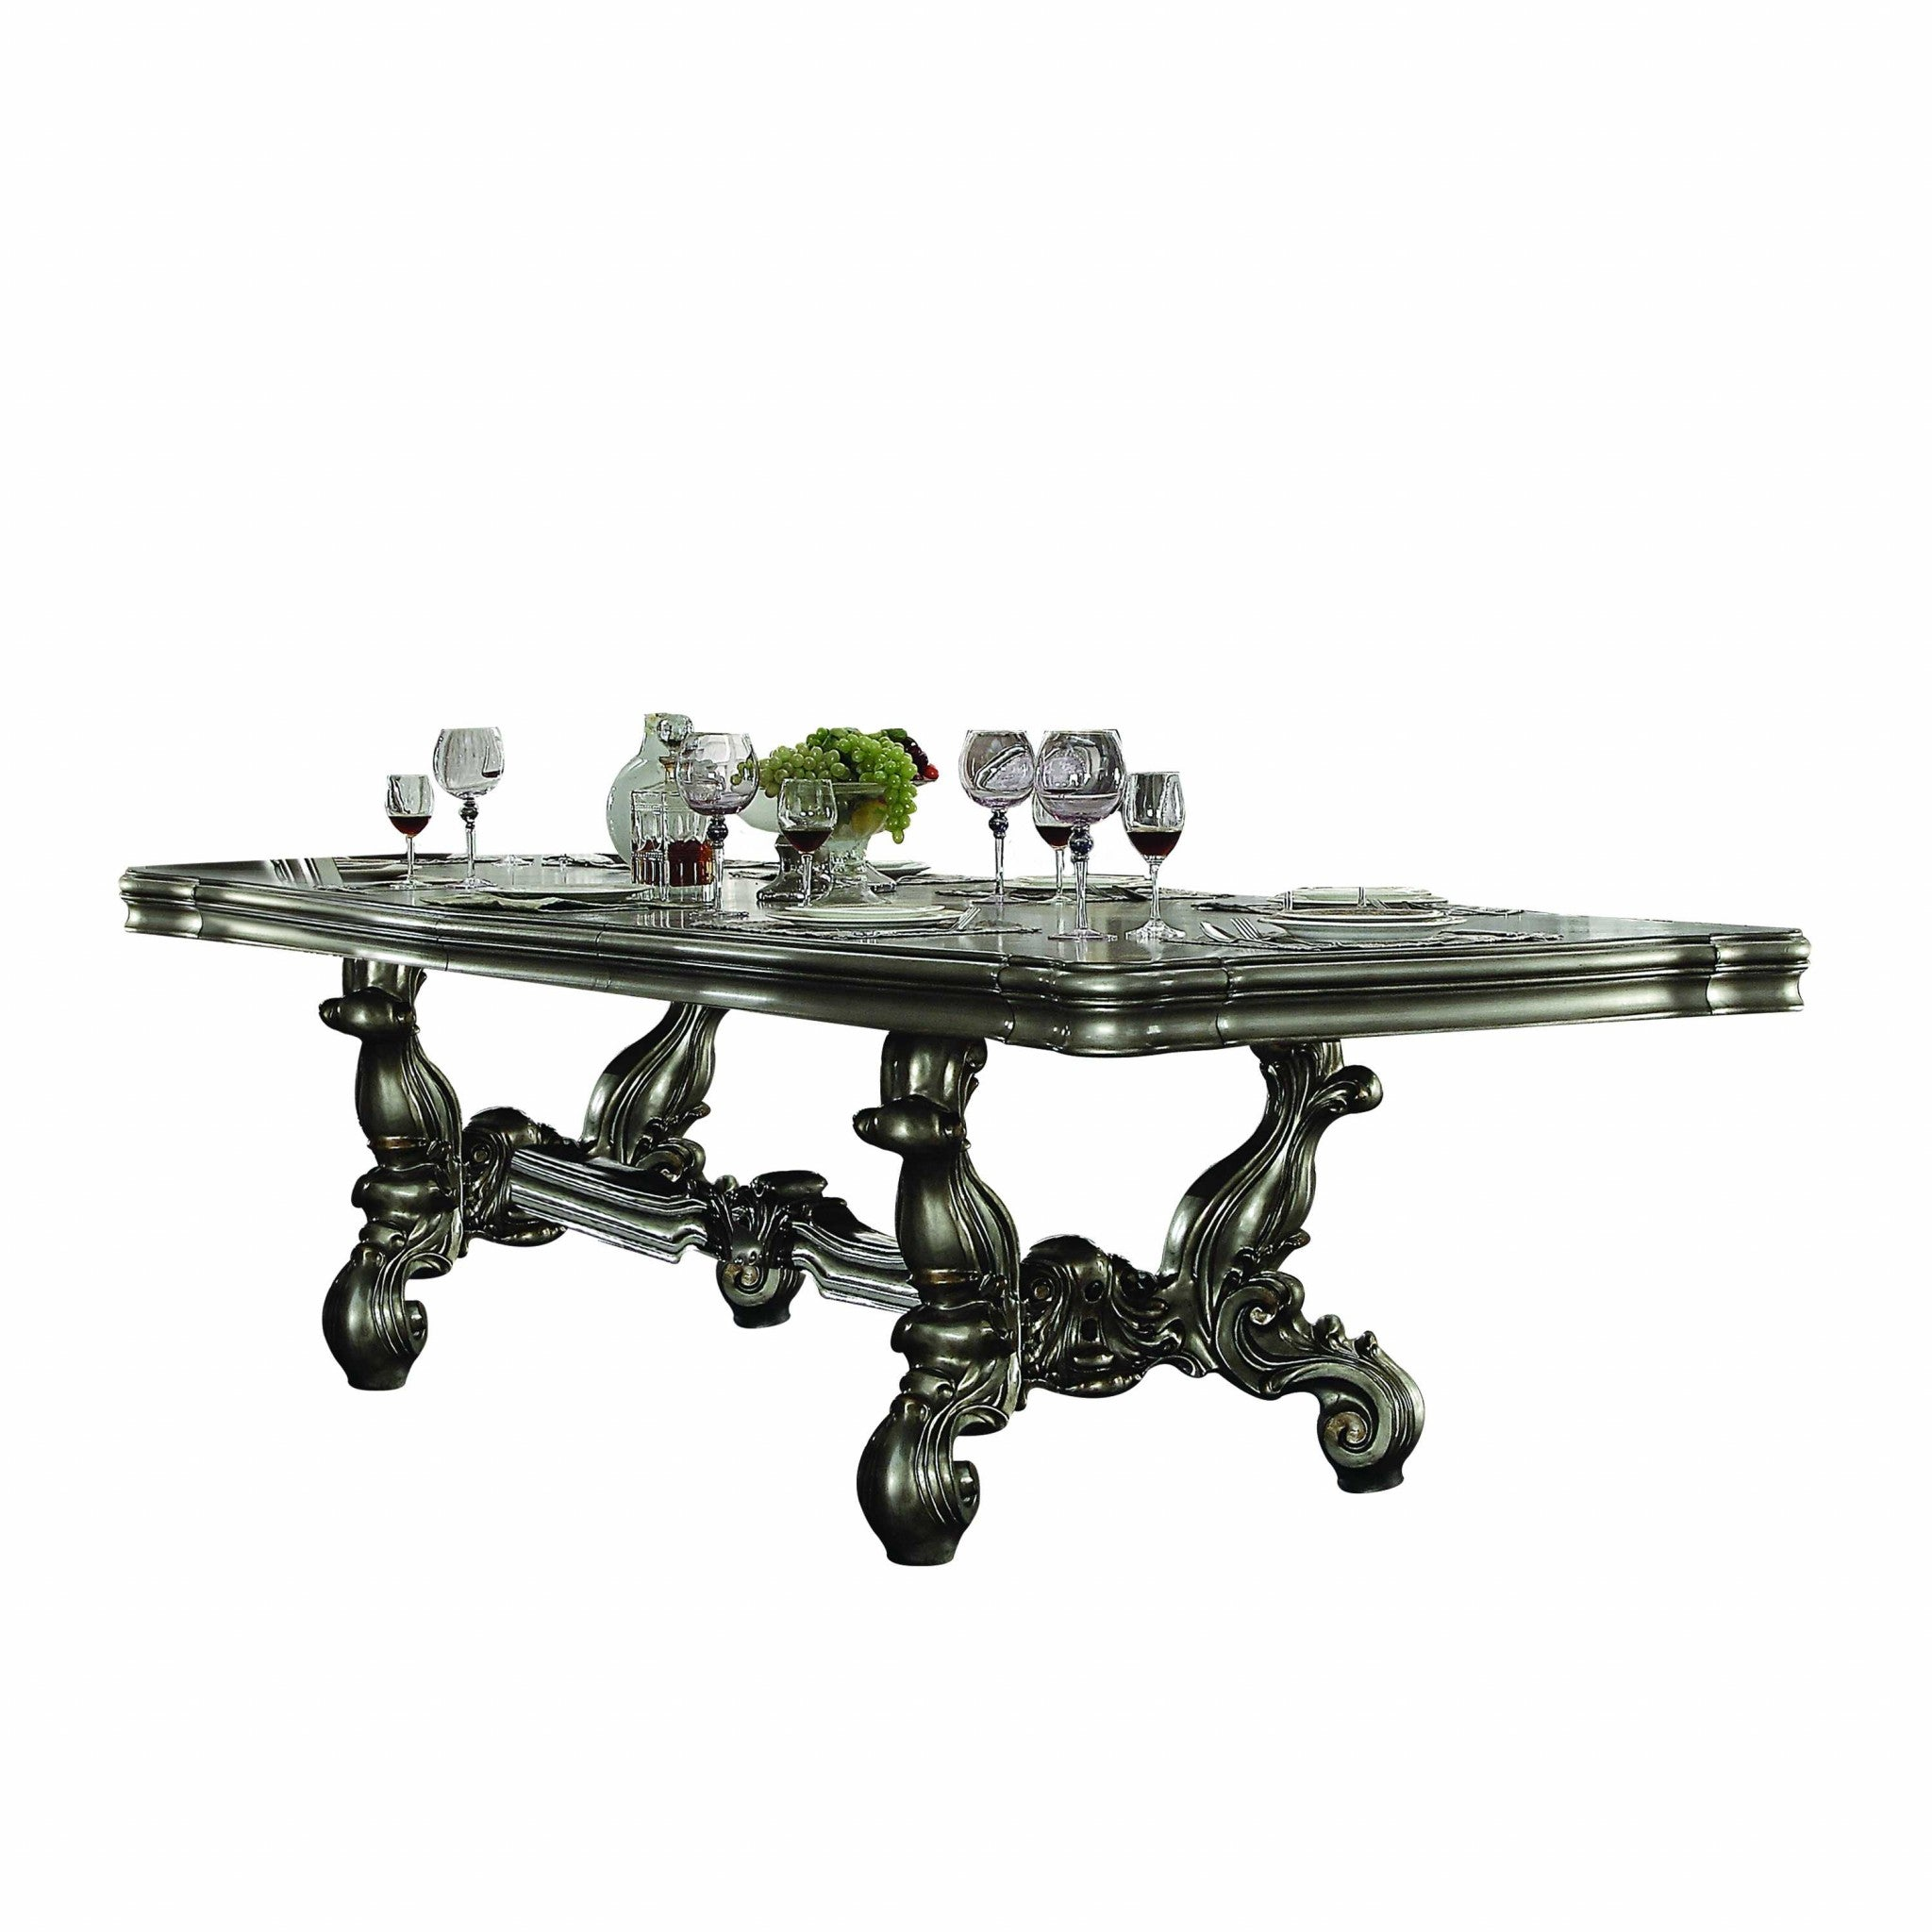 "46"" X 136"" X 32"" Antique Platinum Wood Poly Resin Dining Table (136""L)"